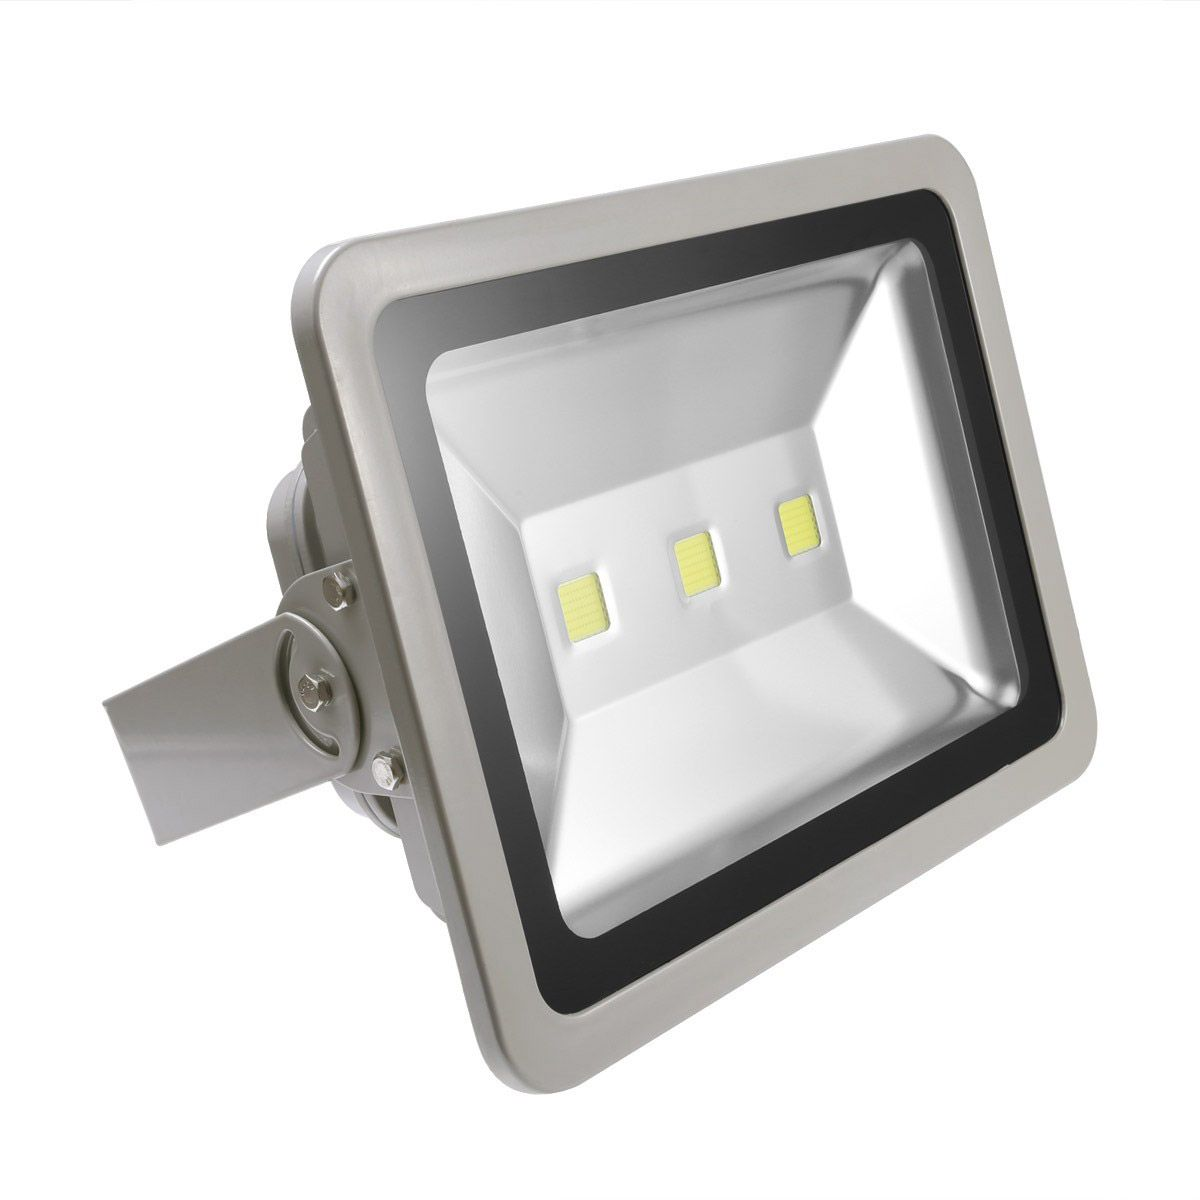 Outdoor Flood Lights Led Choose From A Huge Range Of Highquality #durable And Powerful